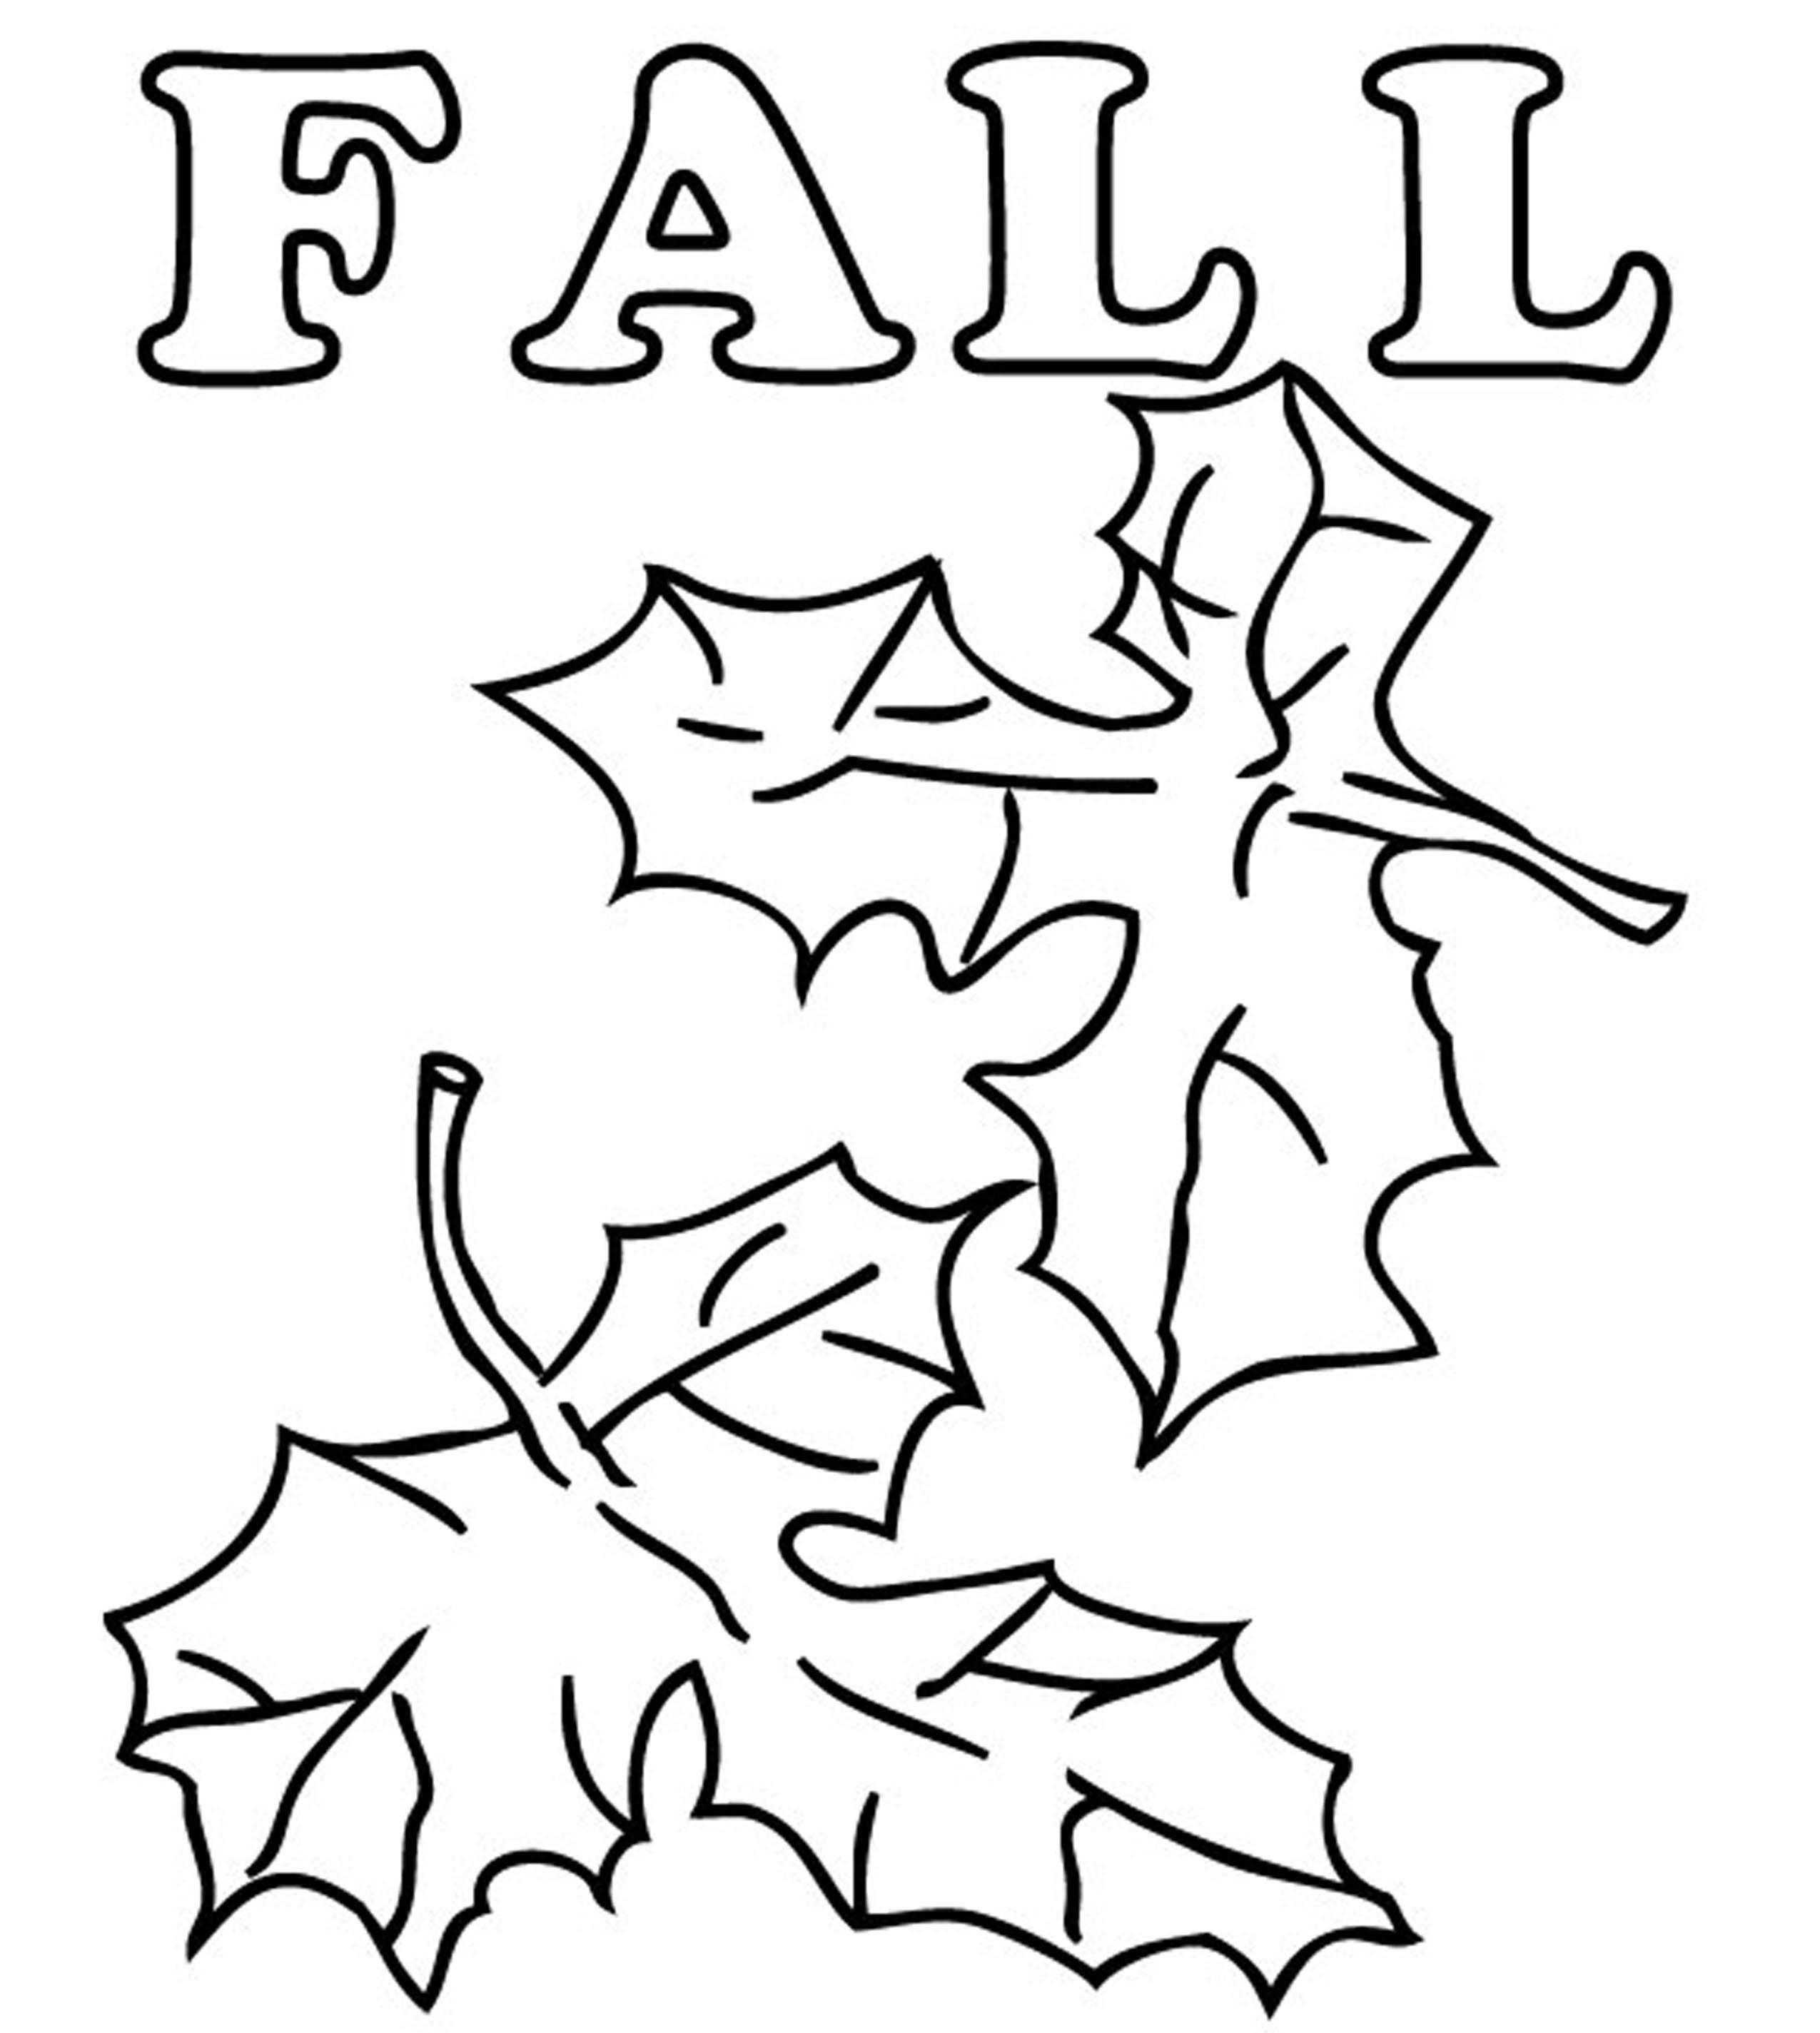 coloring pictures leaves free printable leaf coloring pages for kids coloring leaves pictures